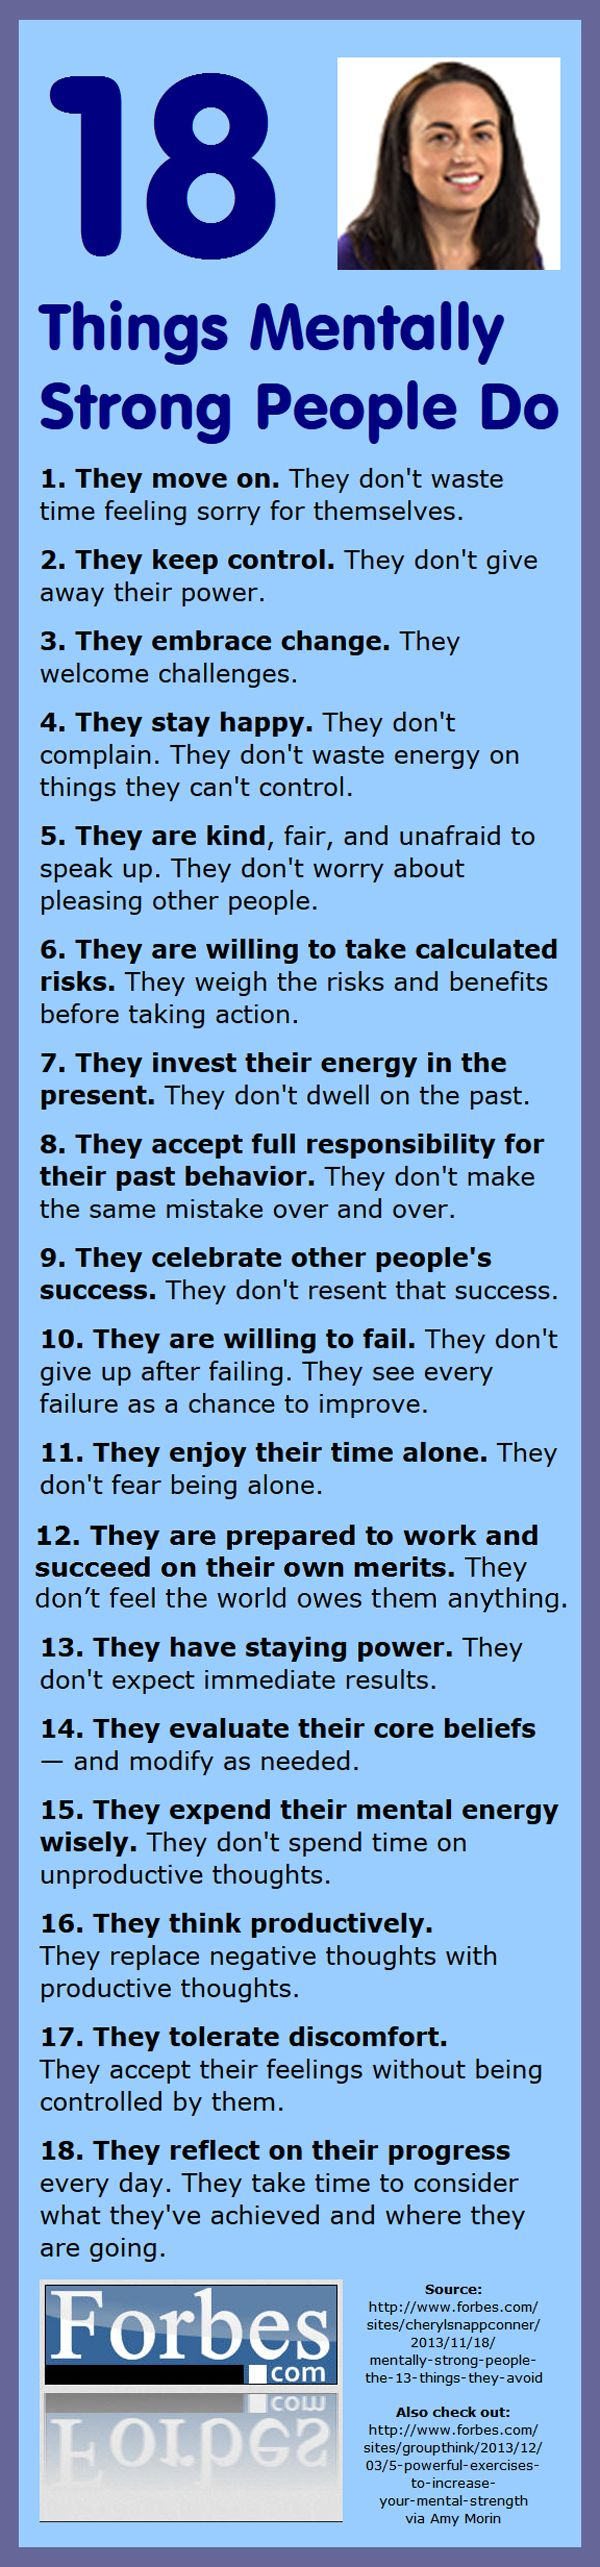 18-things-mentally-strong-people-do